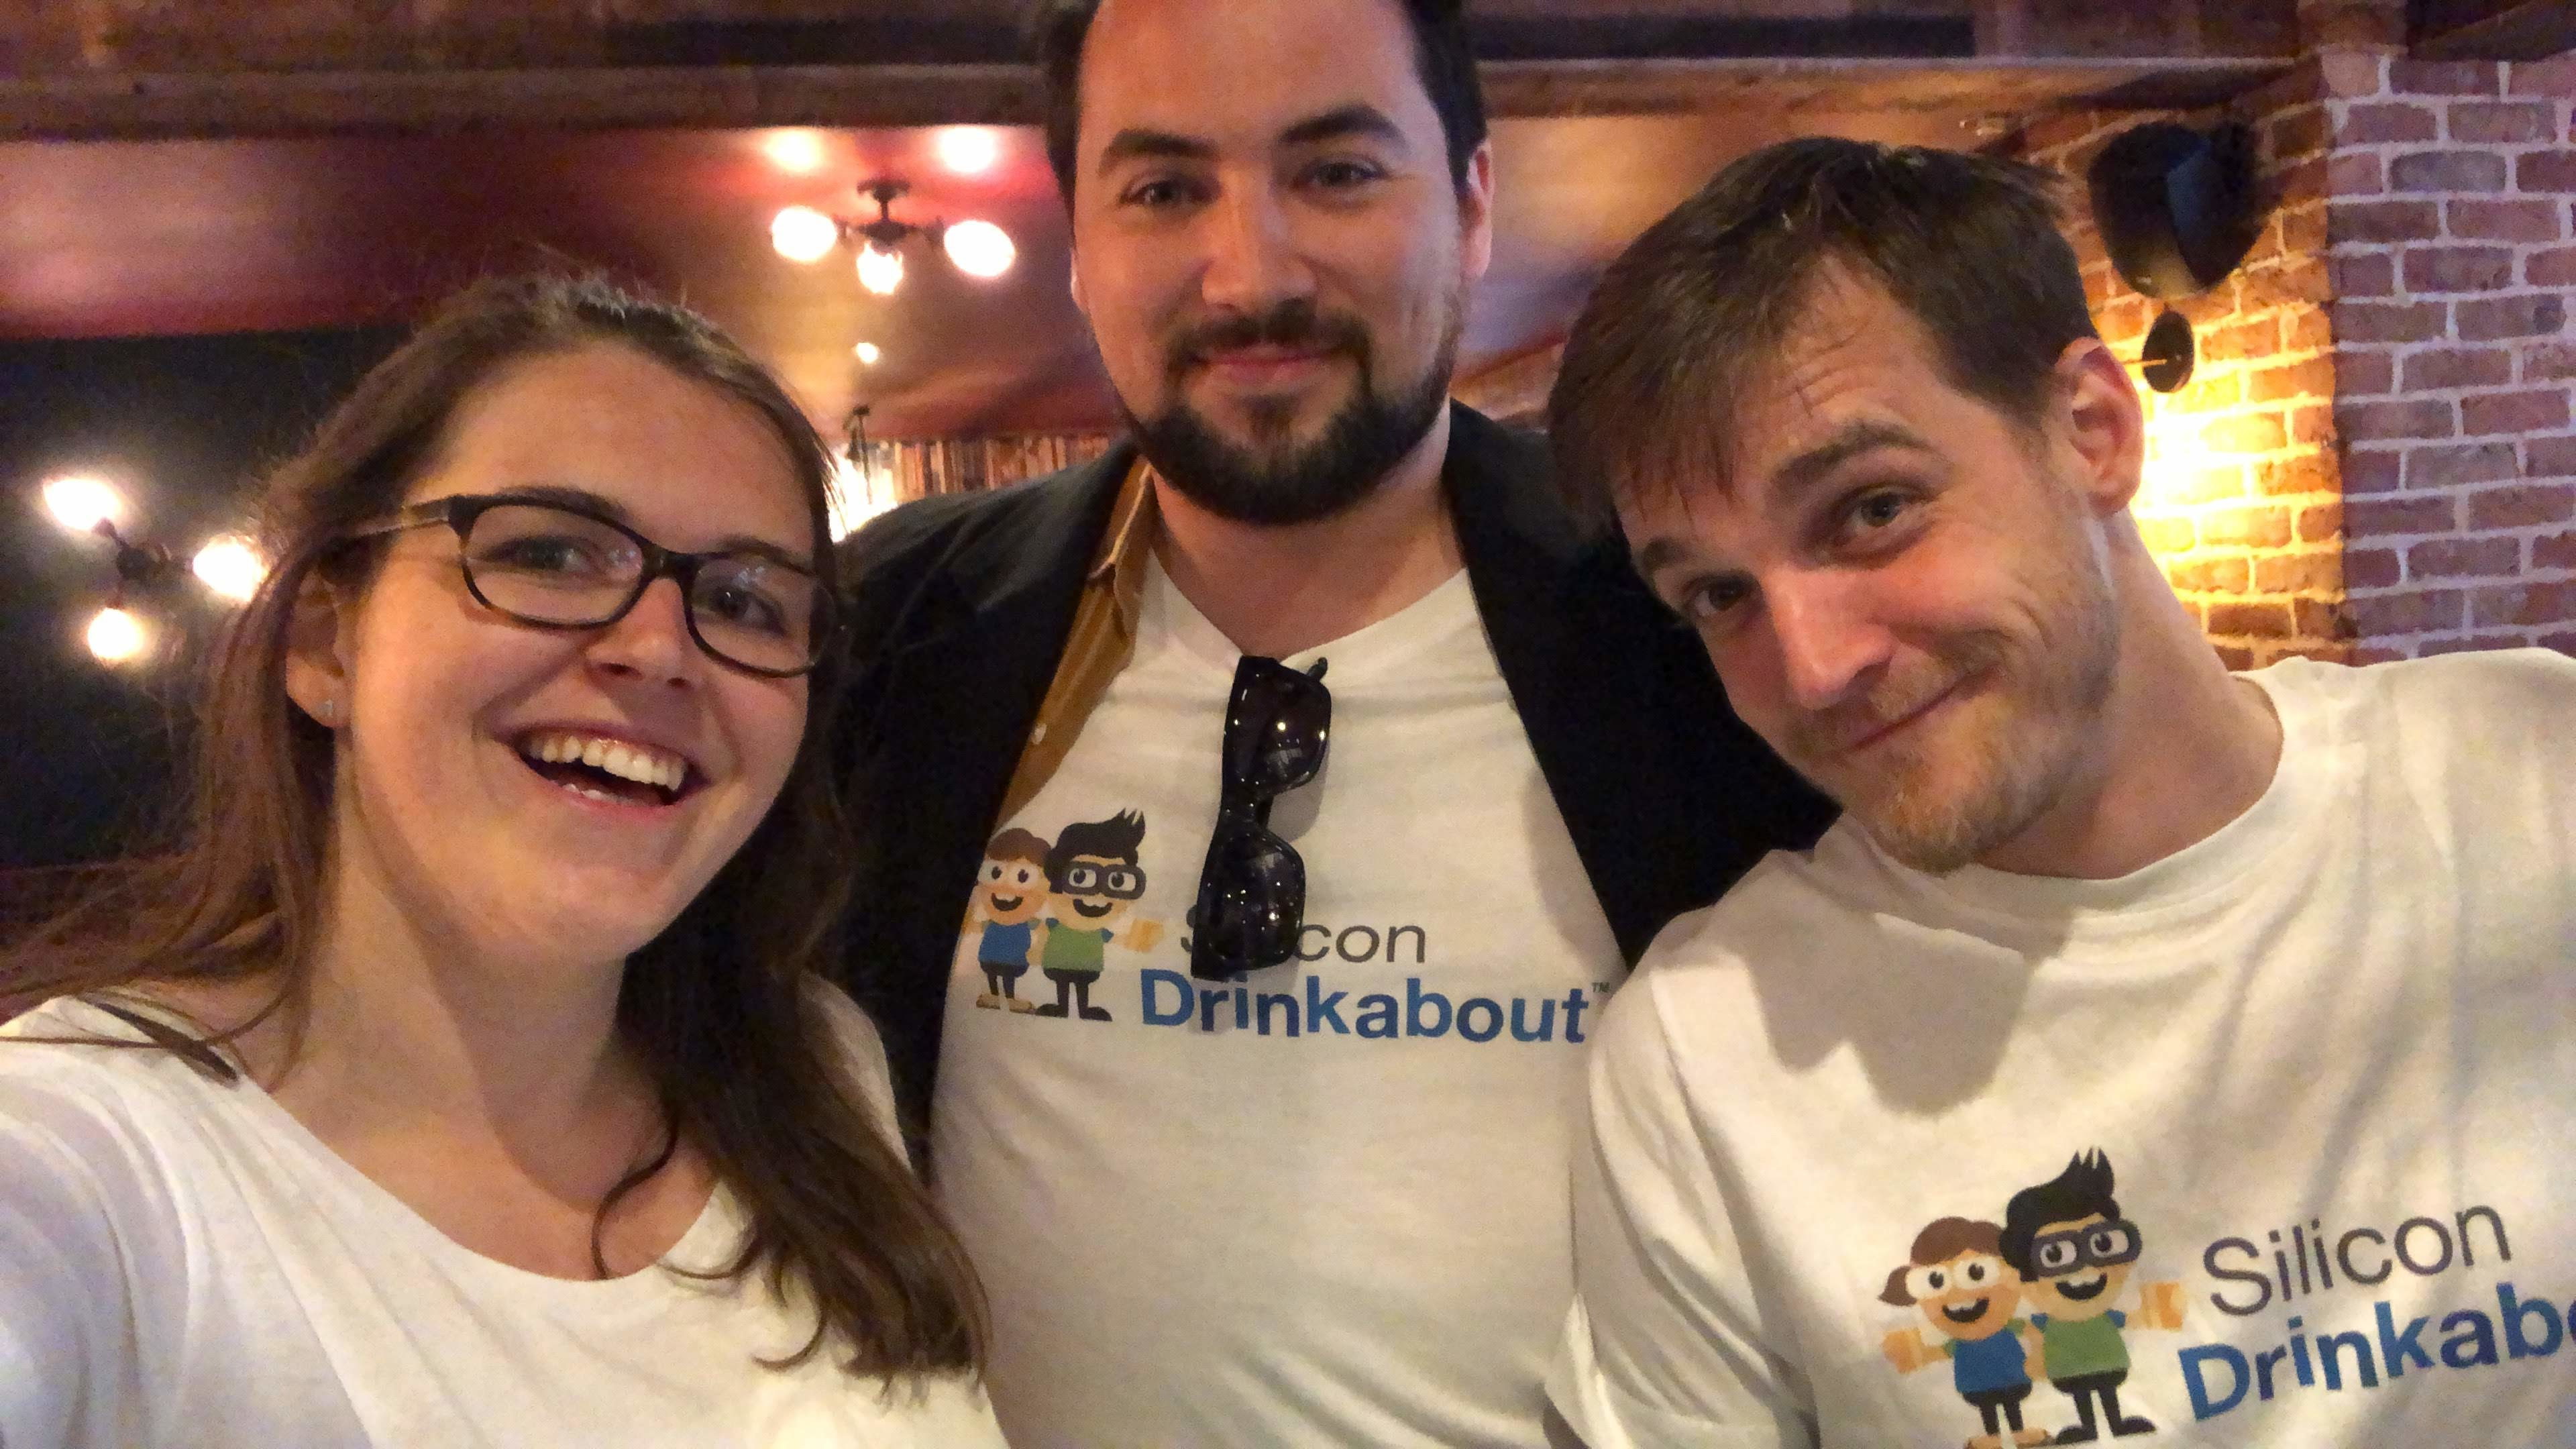 Guest Blog: Building meaningful connections – what makes Silicon Drinkabout different?